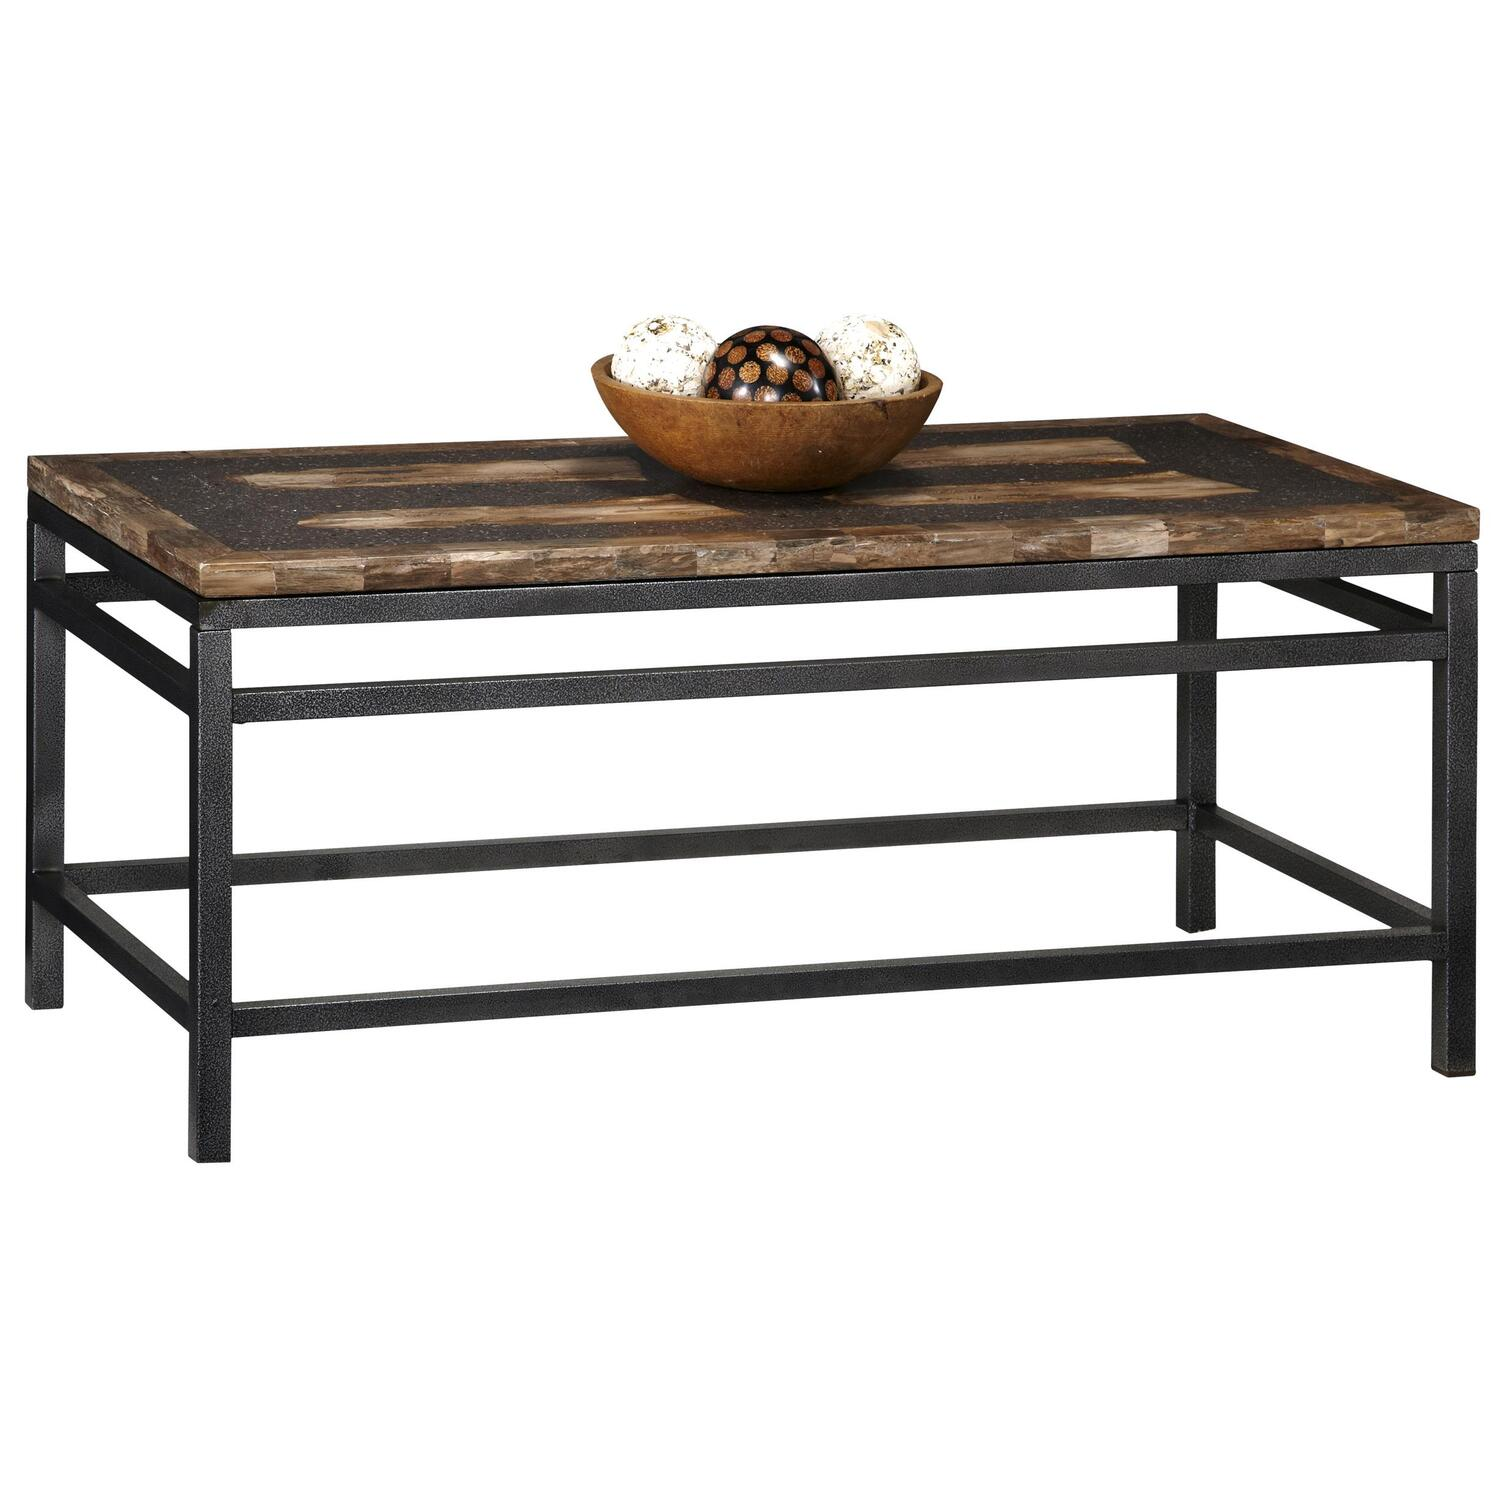 Home styles turn to stone cocktail table by oj commerce Stone coffee table